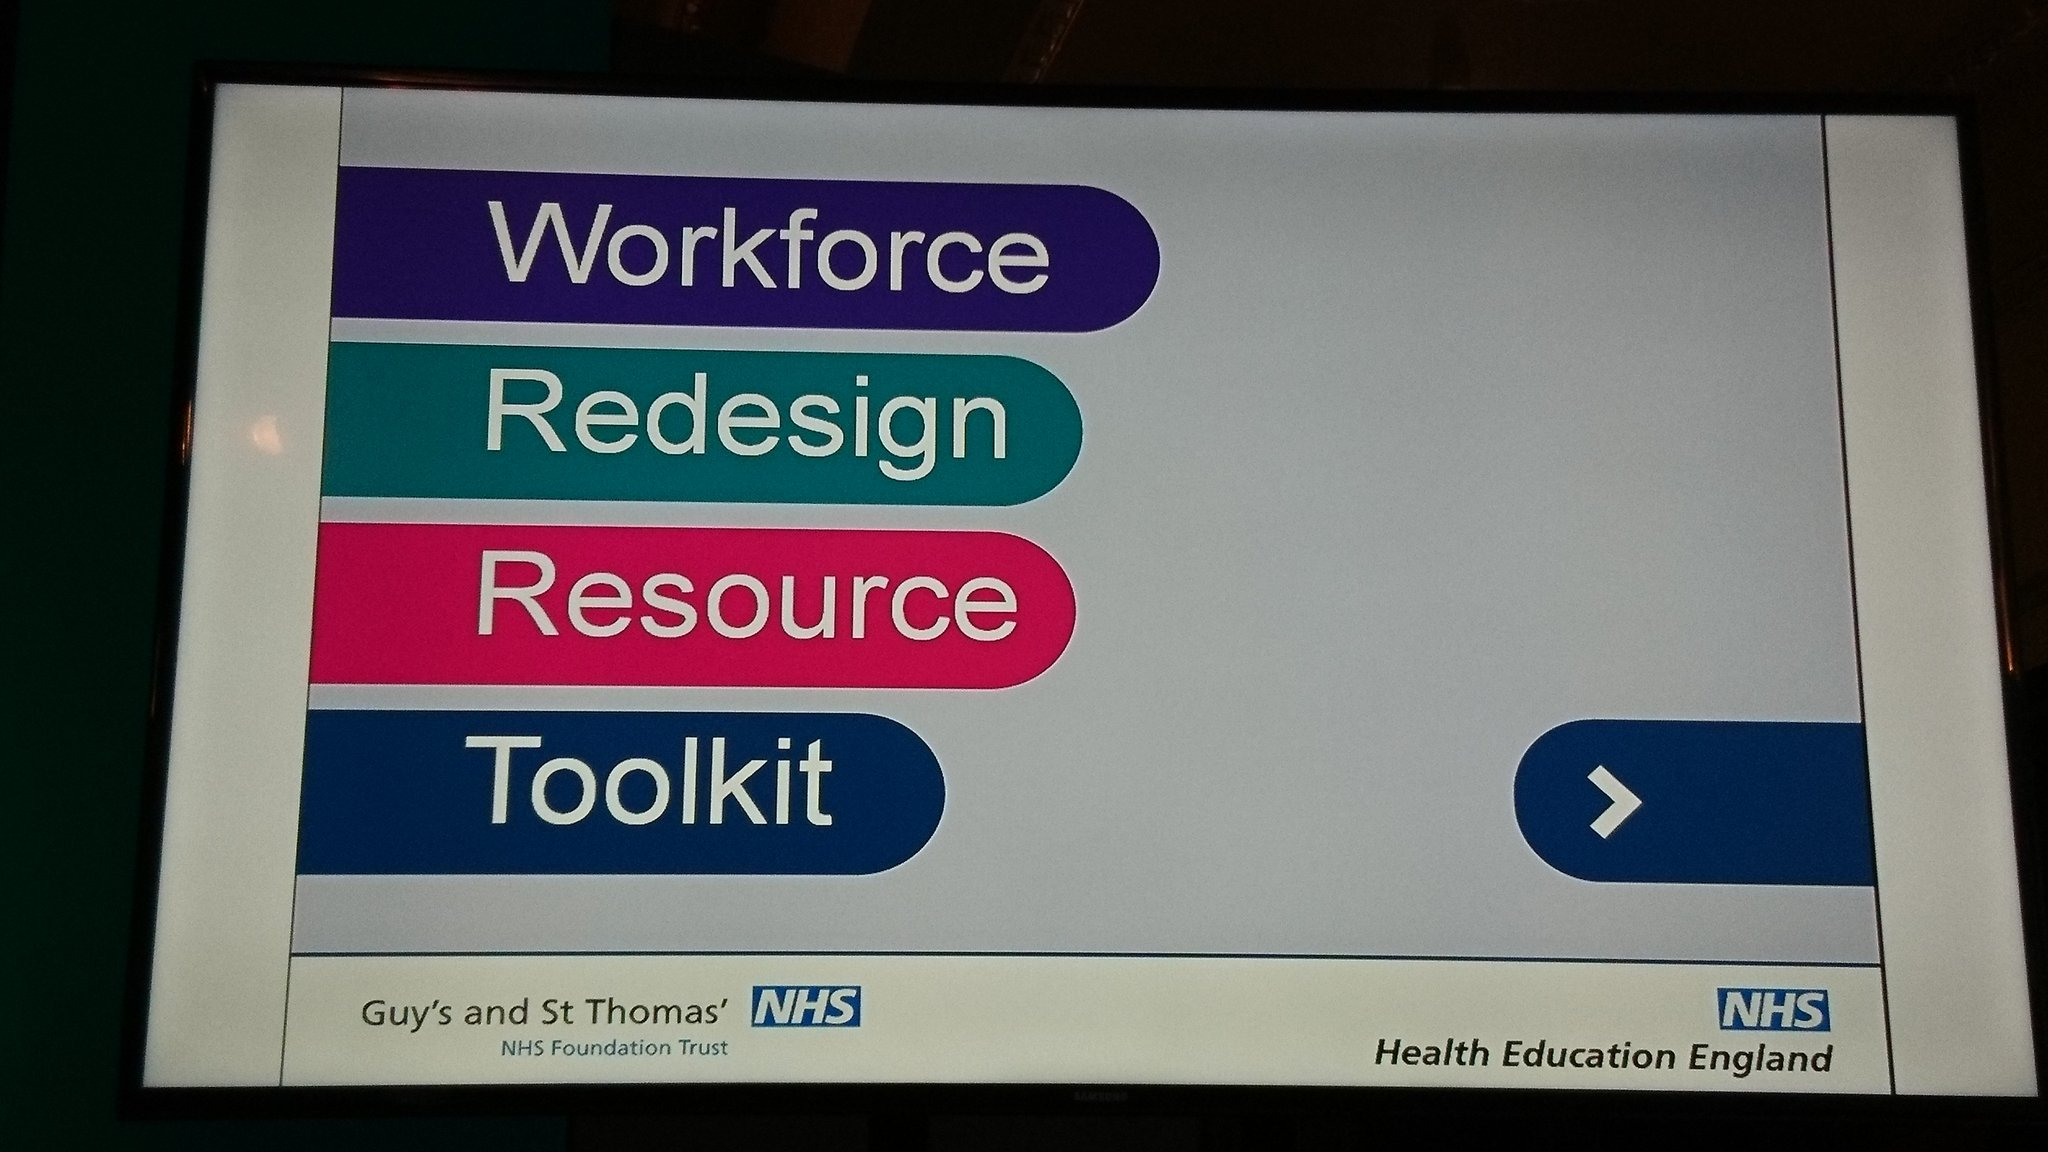 .@PriceKisskadee @sarahlindsell With context and a reality check, creativity is required for L&D strategy to meet business need, or redesign #G2 #cipdLDshow https://t.co/PFheEaEOn1